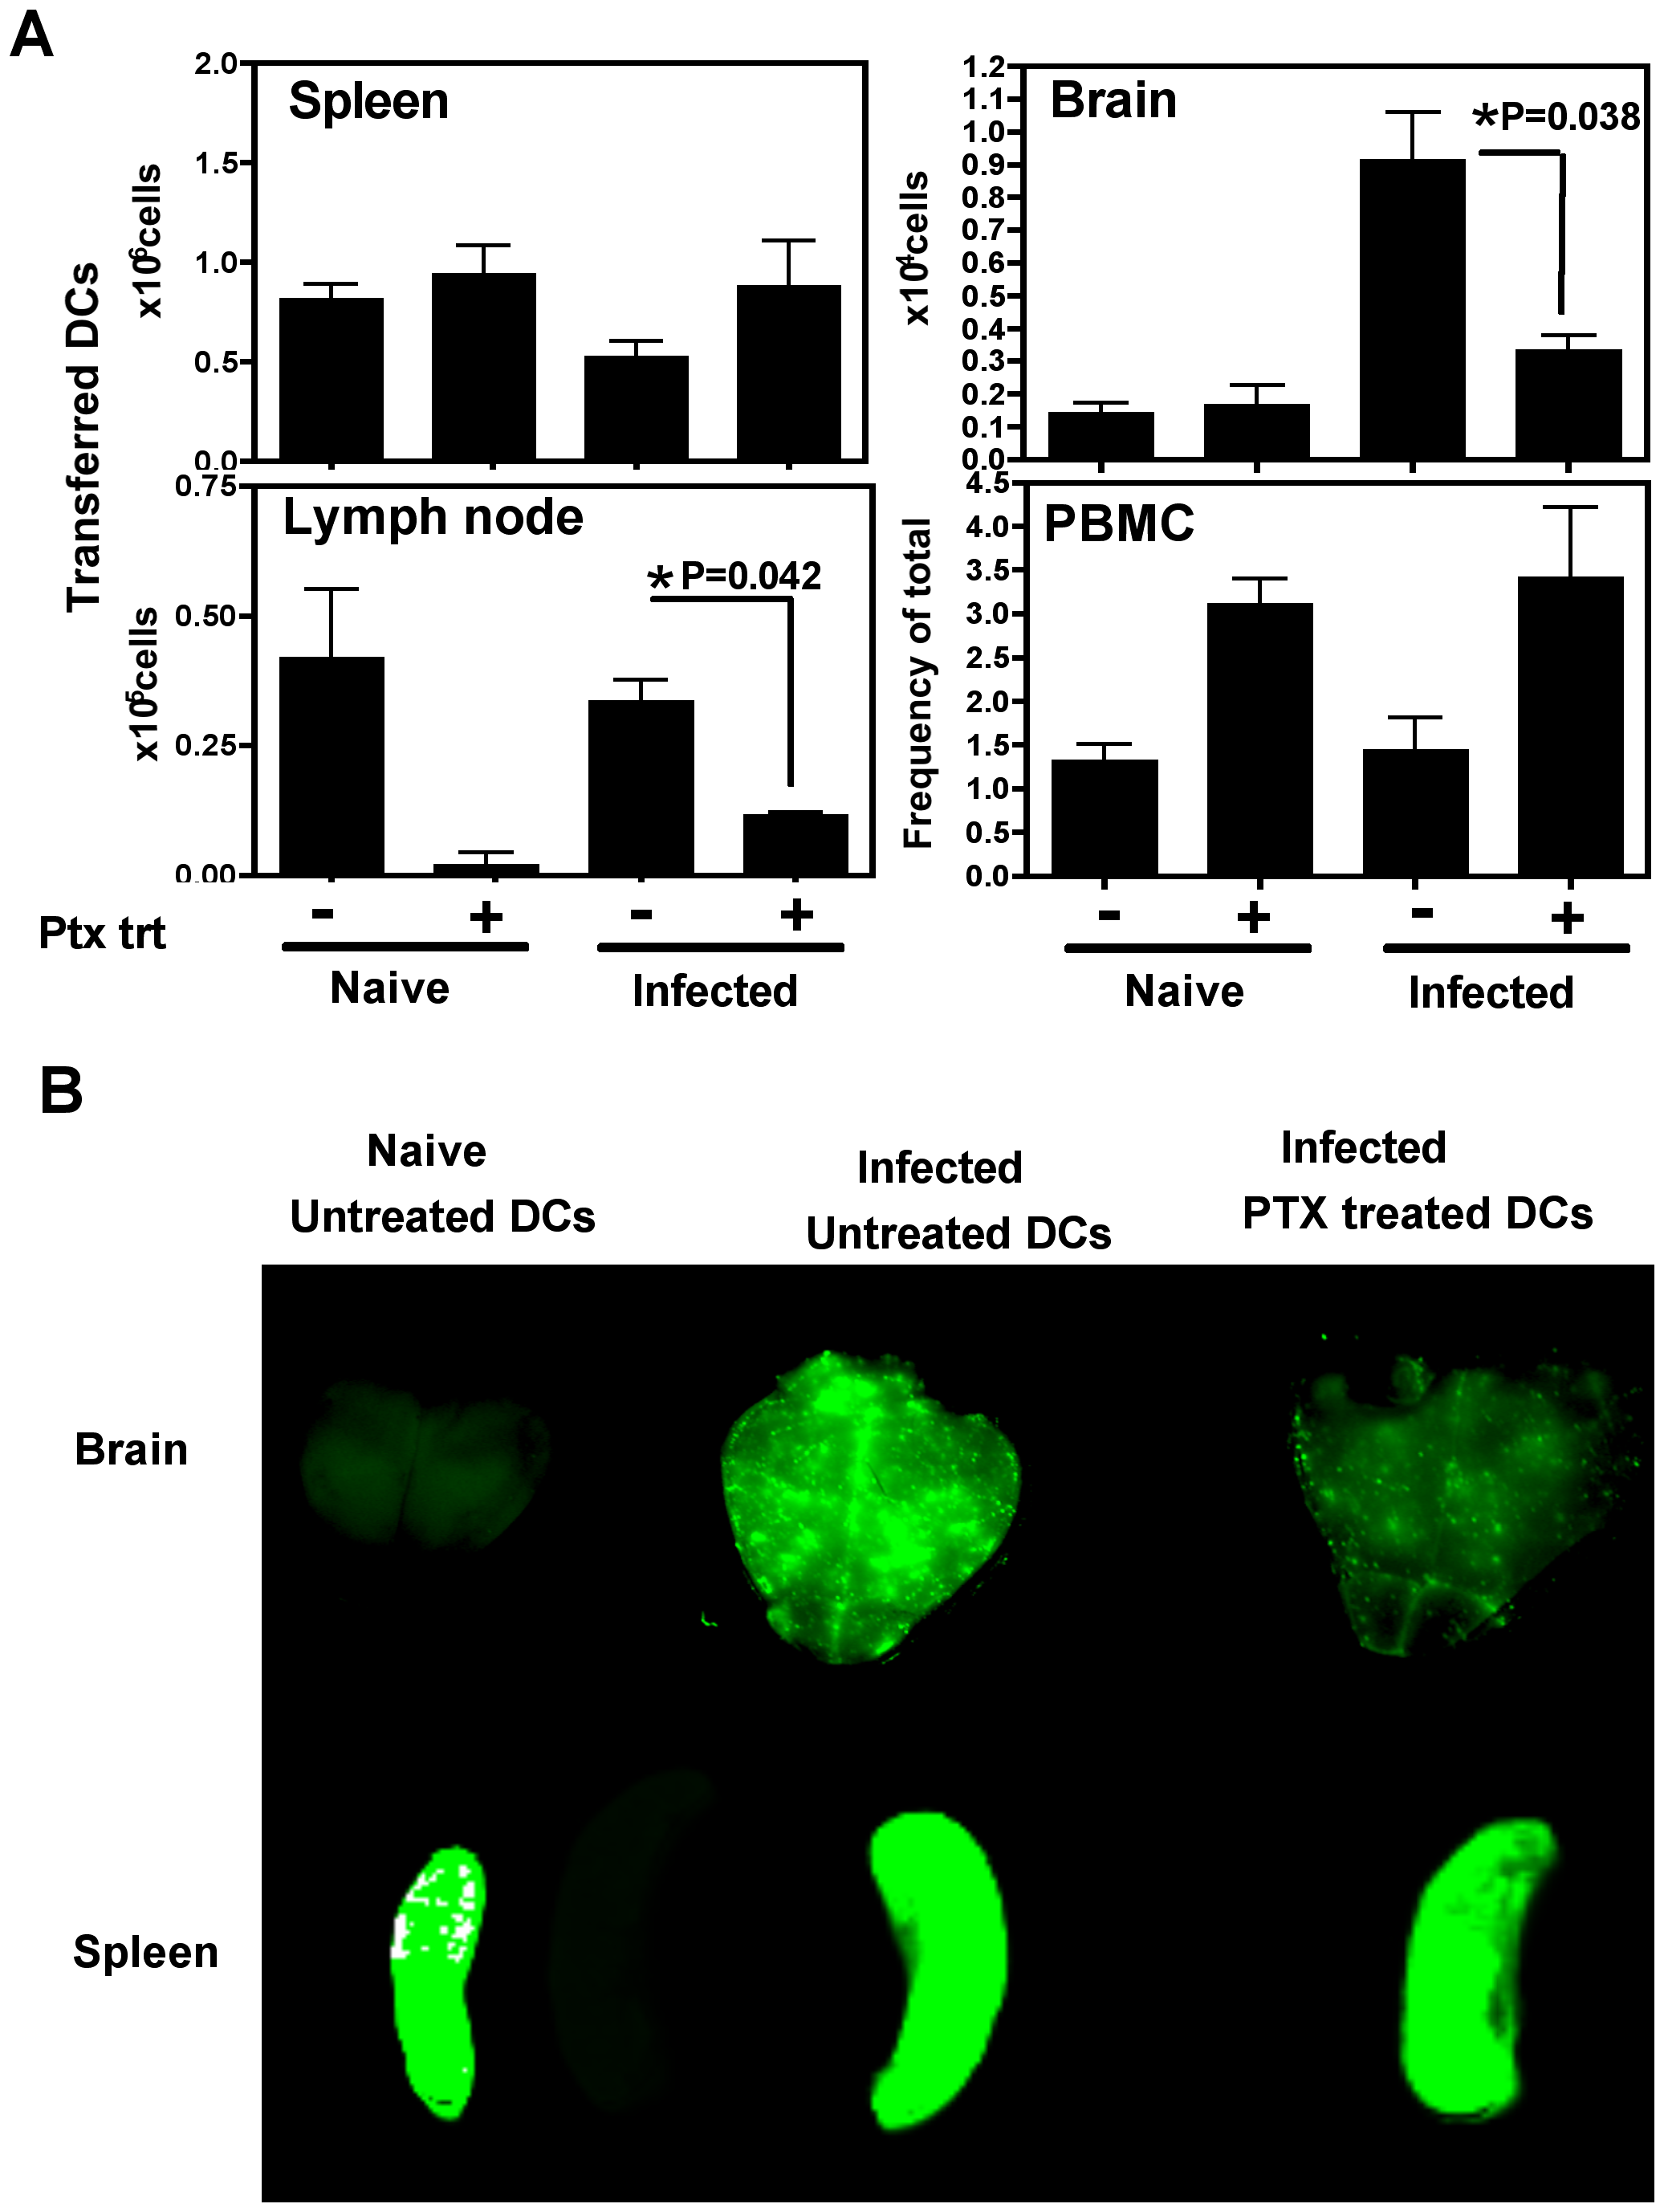 Migration of adoptively transferred DCs into the brain is a pertussis toxin sensitive process.